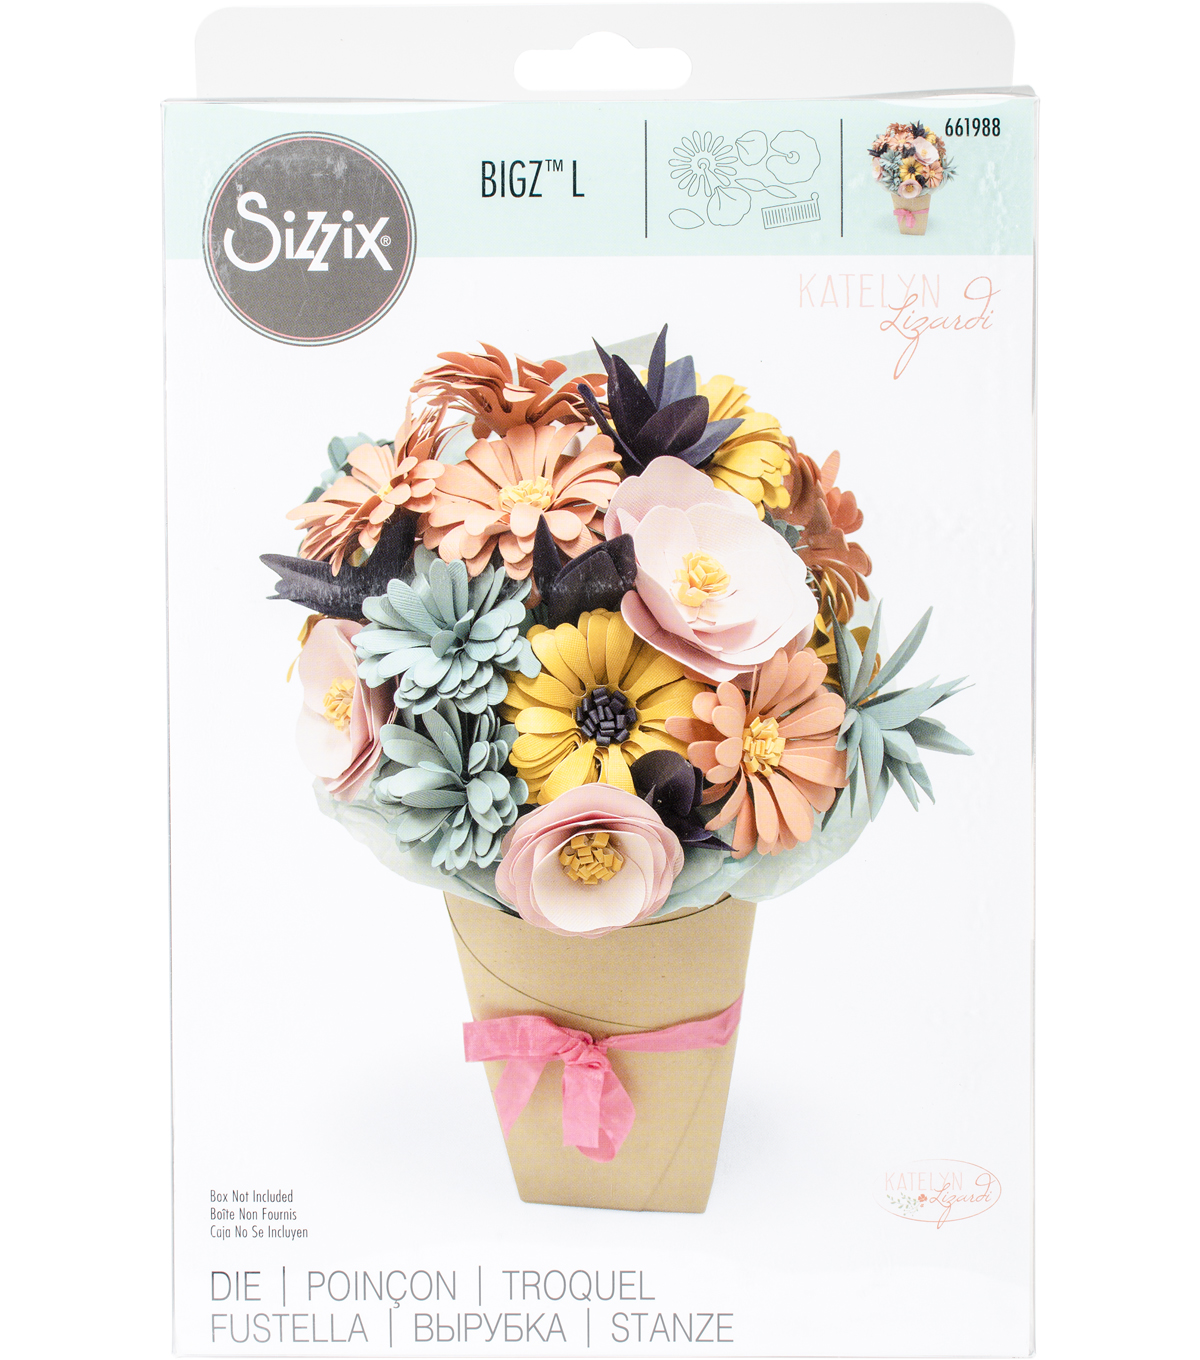 Sizzix Bigz L Dies By Katelyn Lizardi-Bundle Of Flowers